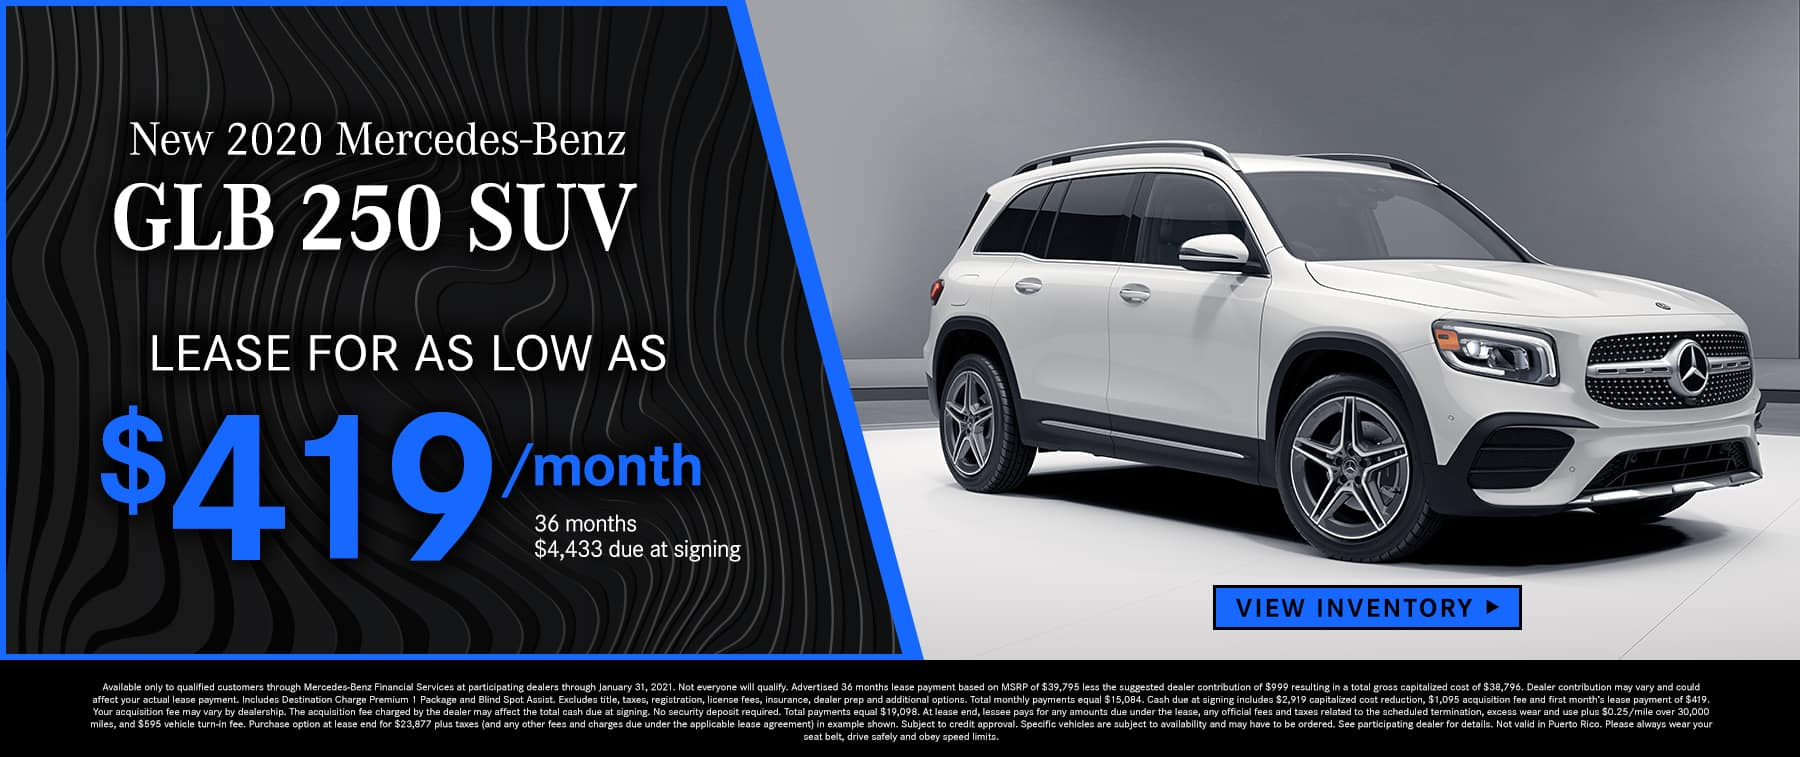 2020 GLB 250 SUV Lease as low as $419 Per Month 36 Months/10k Miles $4,433 Due at signing